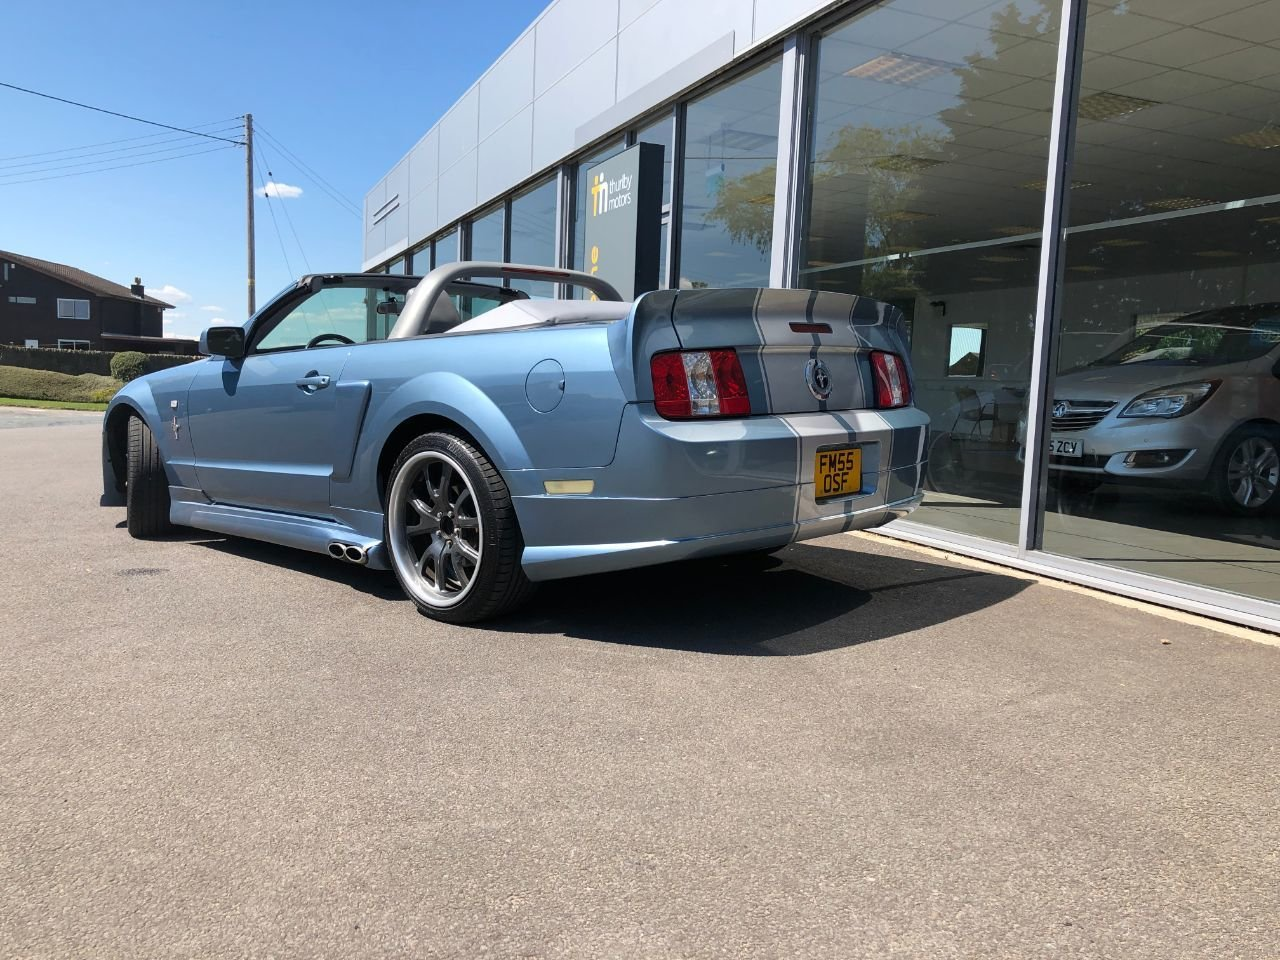 2008 Ford Mustang Convertible For Sale (picture 5 of 6)